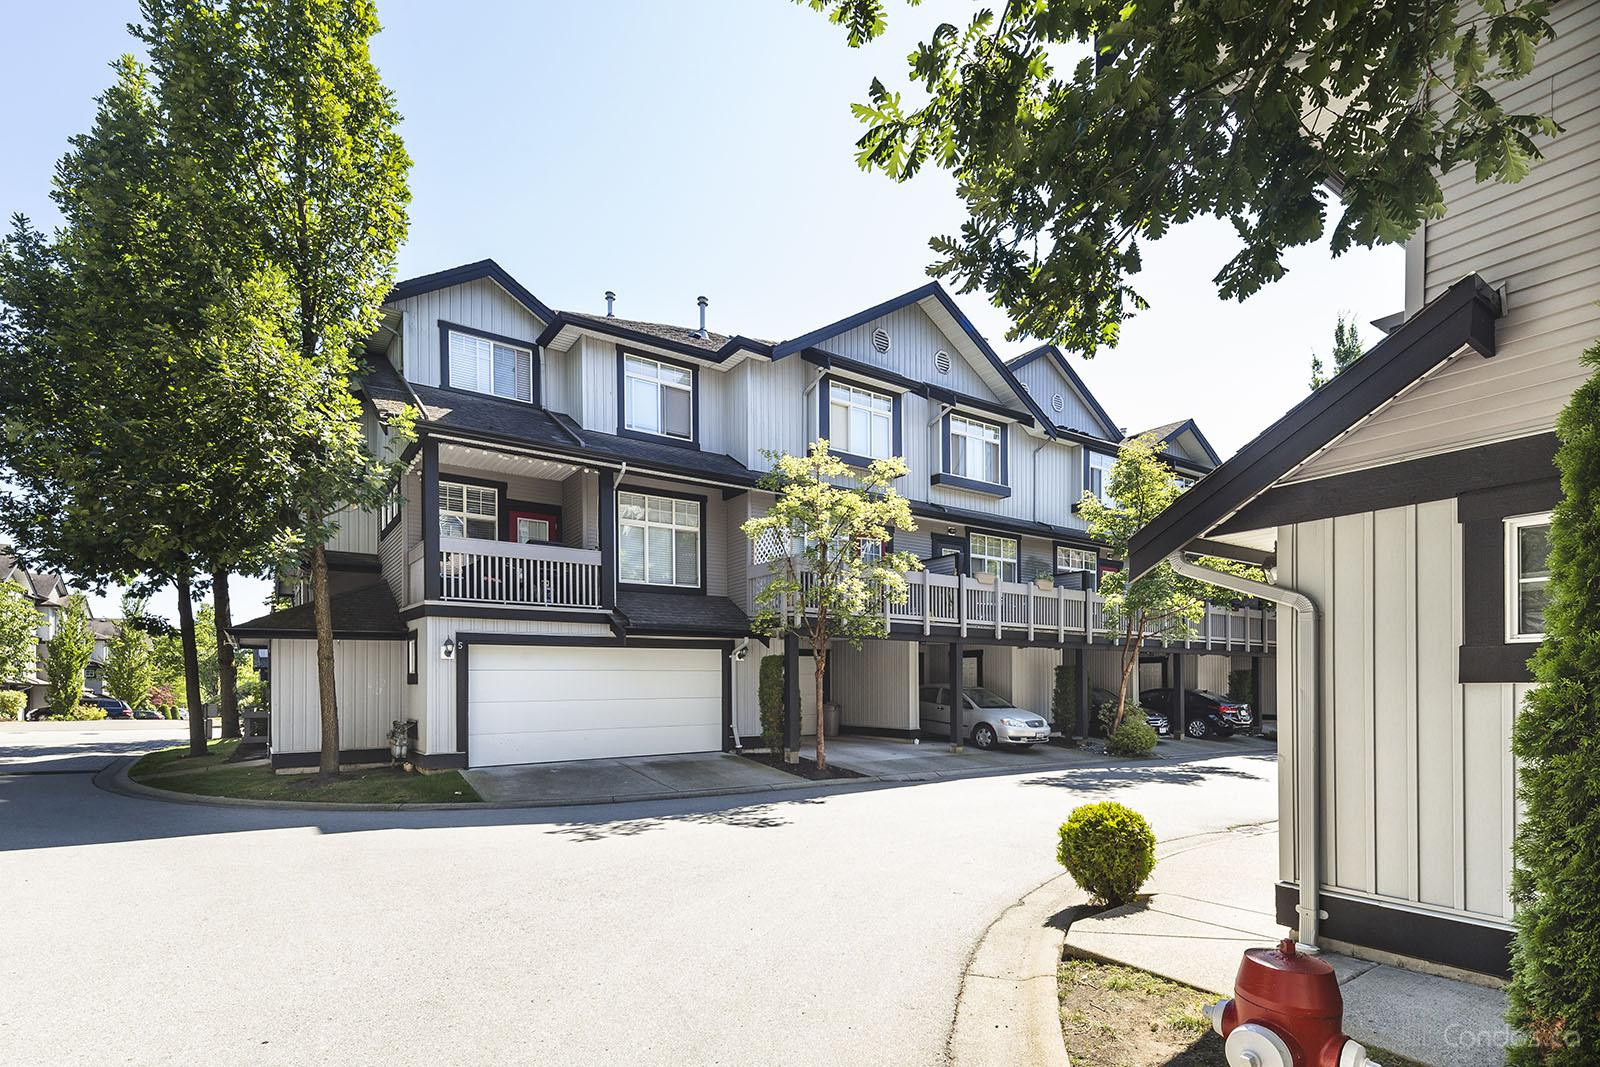 Starpoint II at 18839 69 Ave, Surrey 1